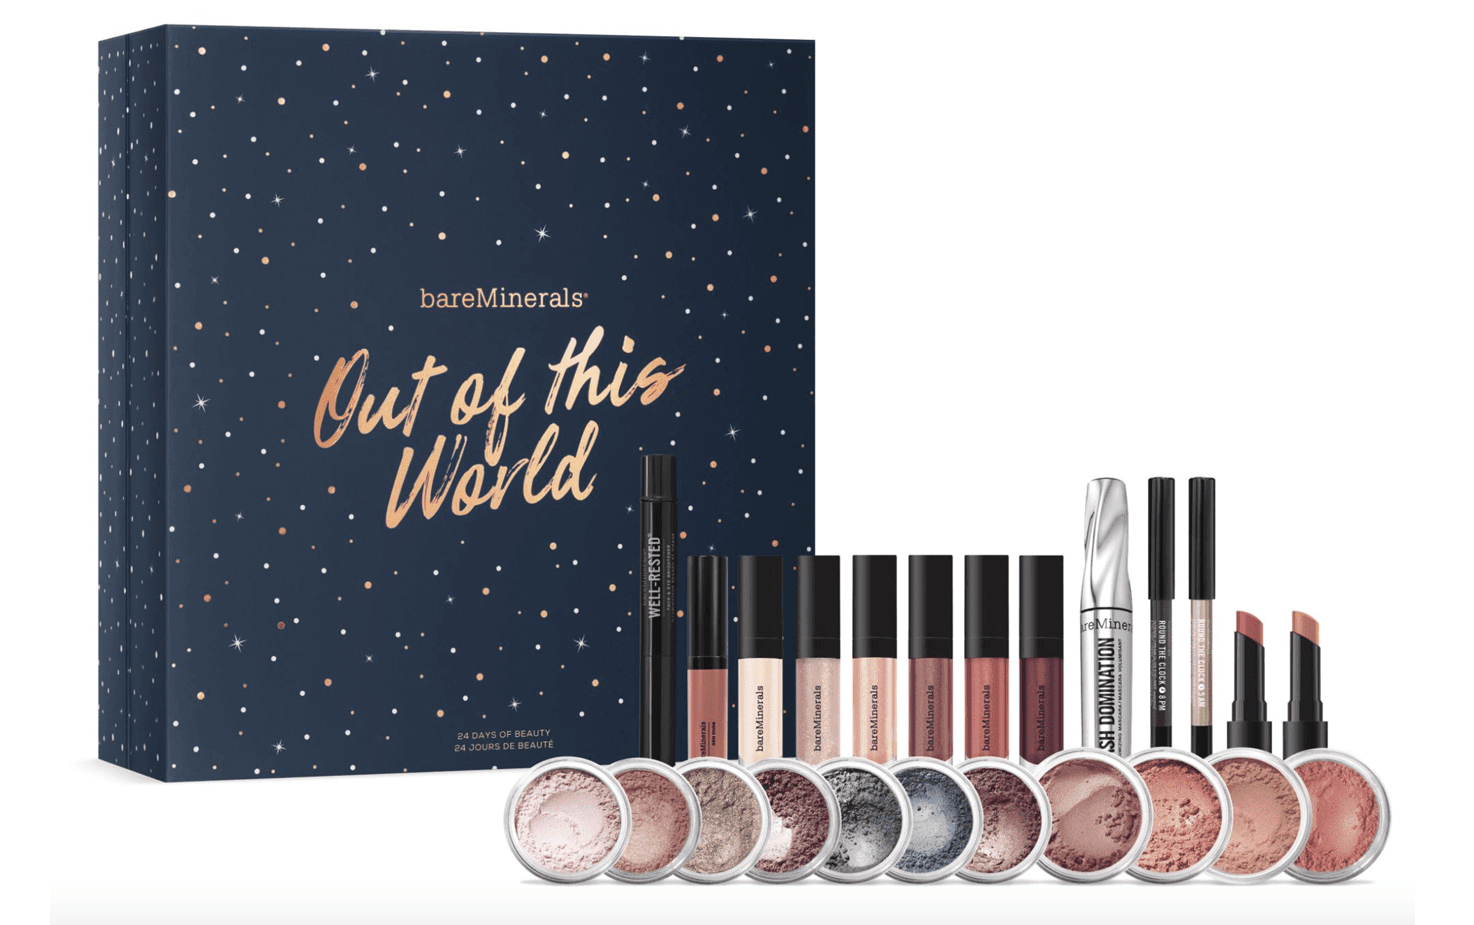 calendrier avent 2018 bareminerals